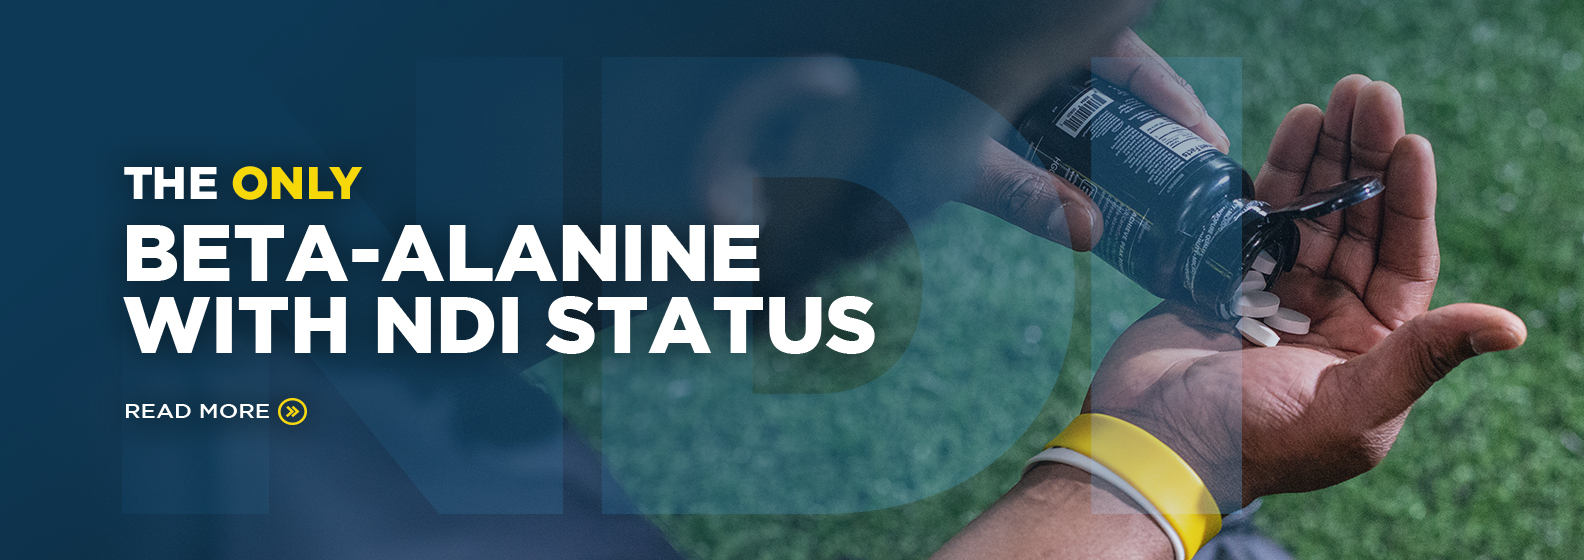 only beta alanine with ndi status